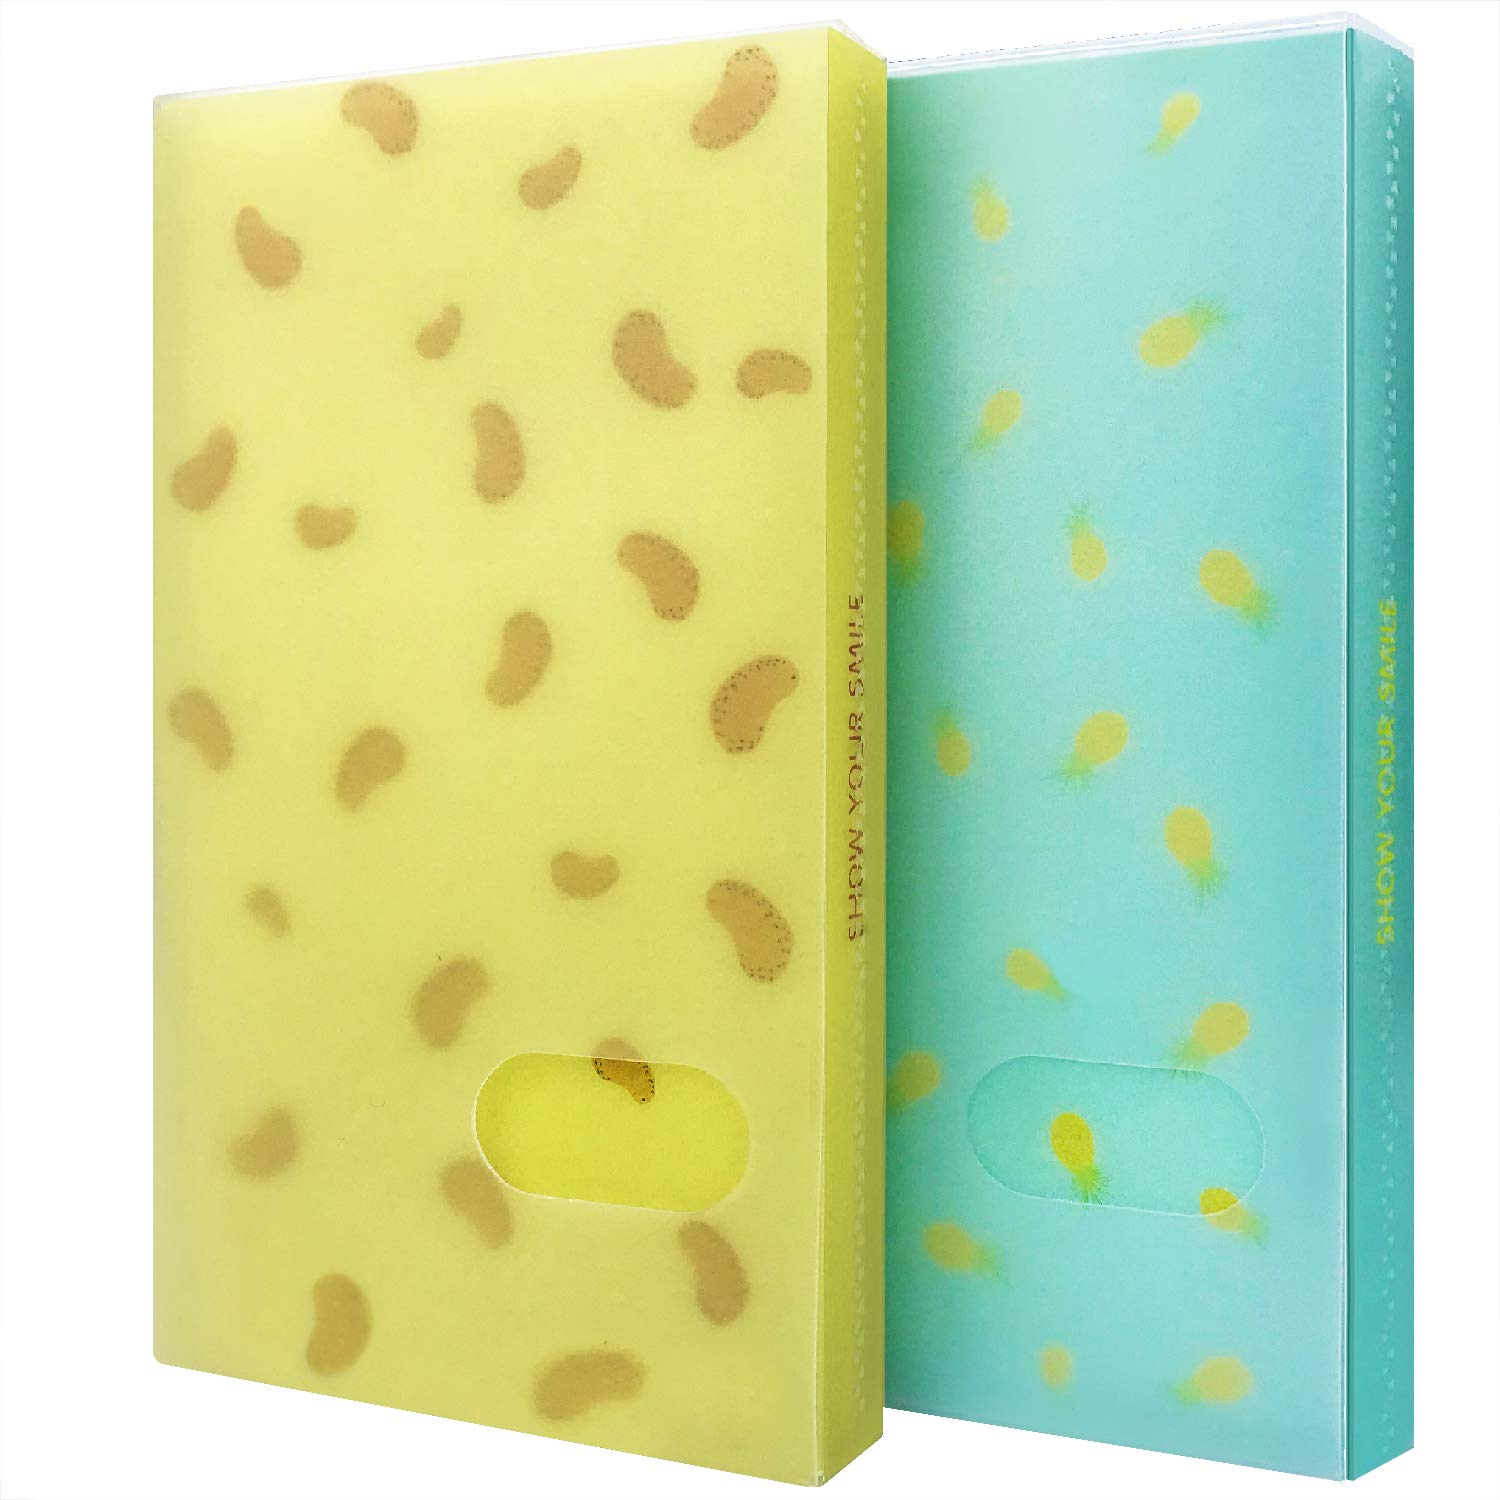 Initial heart Business Card Book Holders 2 Pack Color Name Card Book Rack Book Case Organizer ID Cards Personal Cards Credit Cards Photo Album LOMO Cards Storage 96 Pockets (Mango-Pineapple)